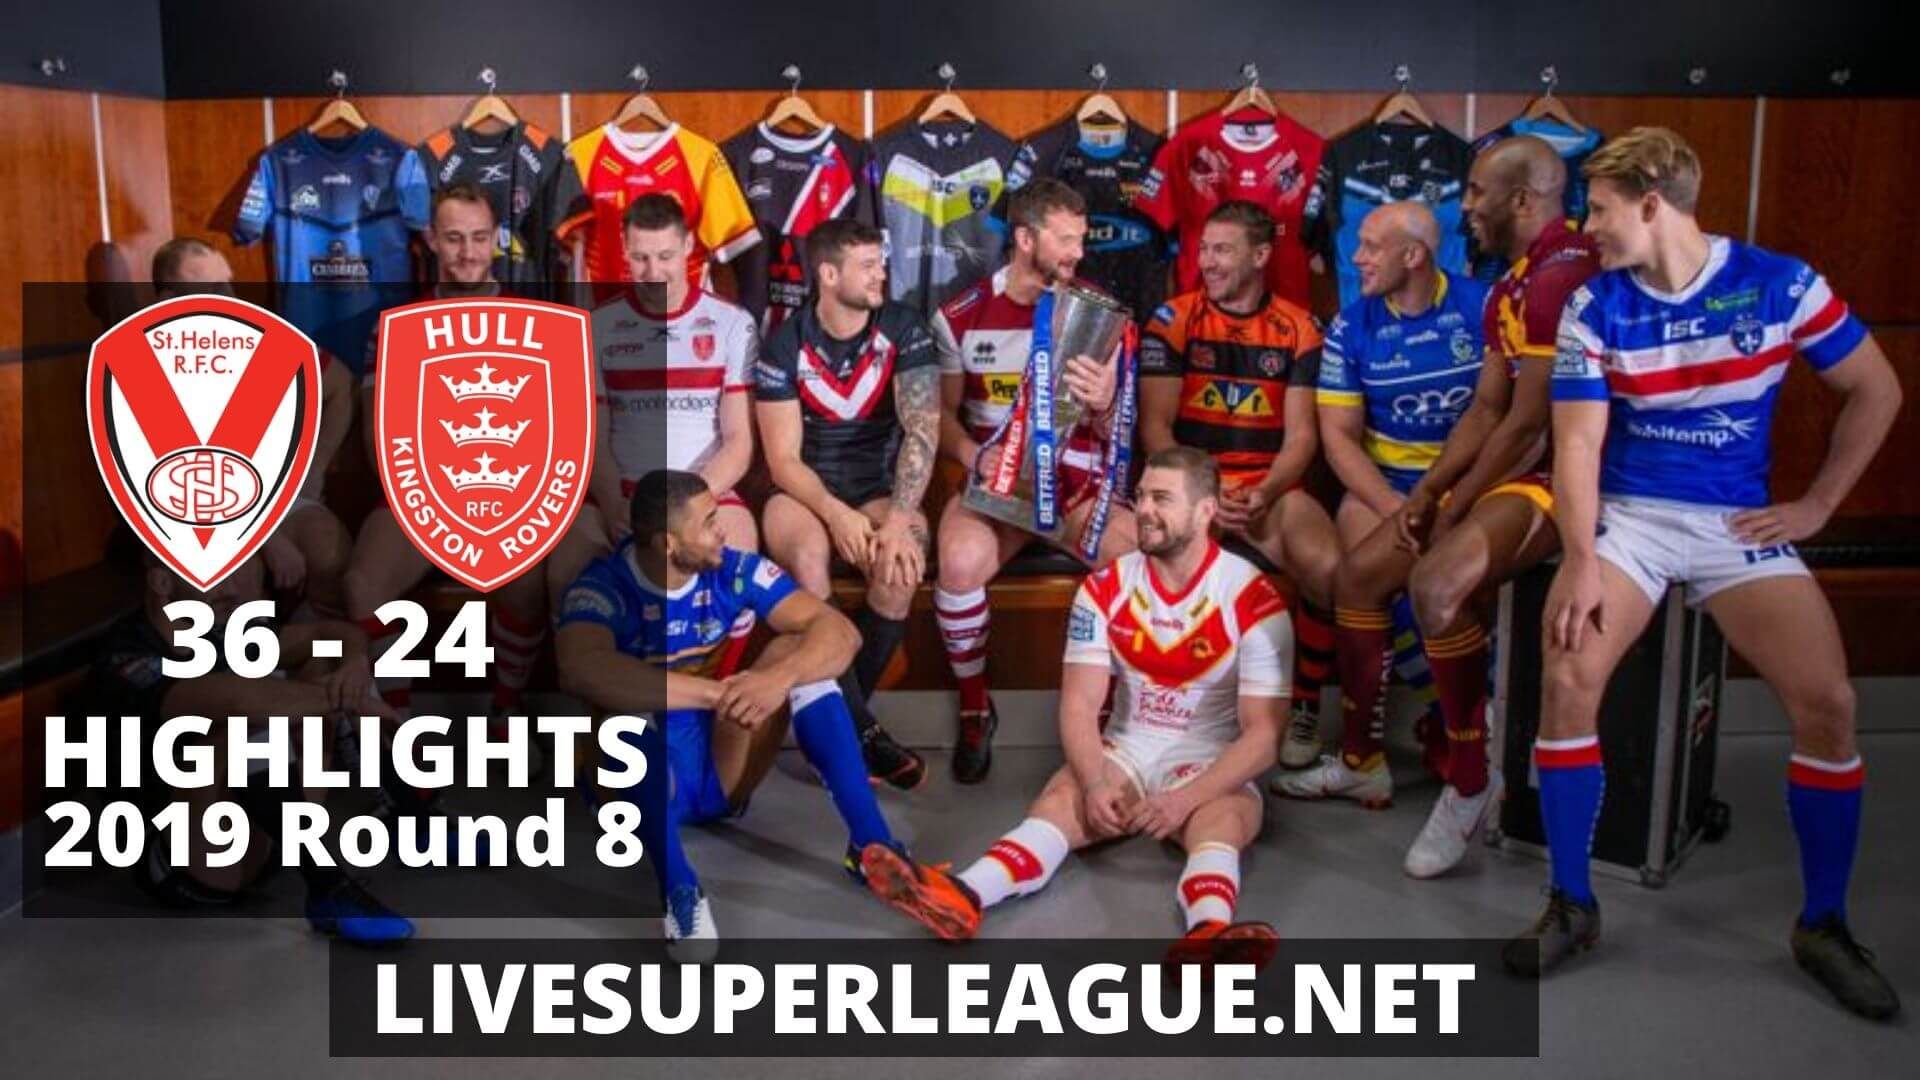 St Helens Vs Hull Kingston Rovers Highlights 2019 Round 8